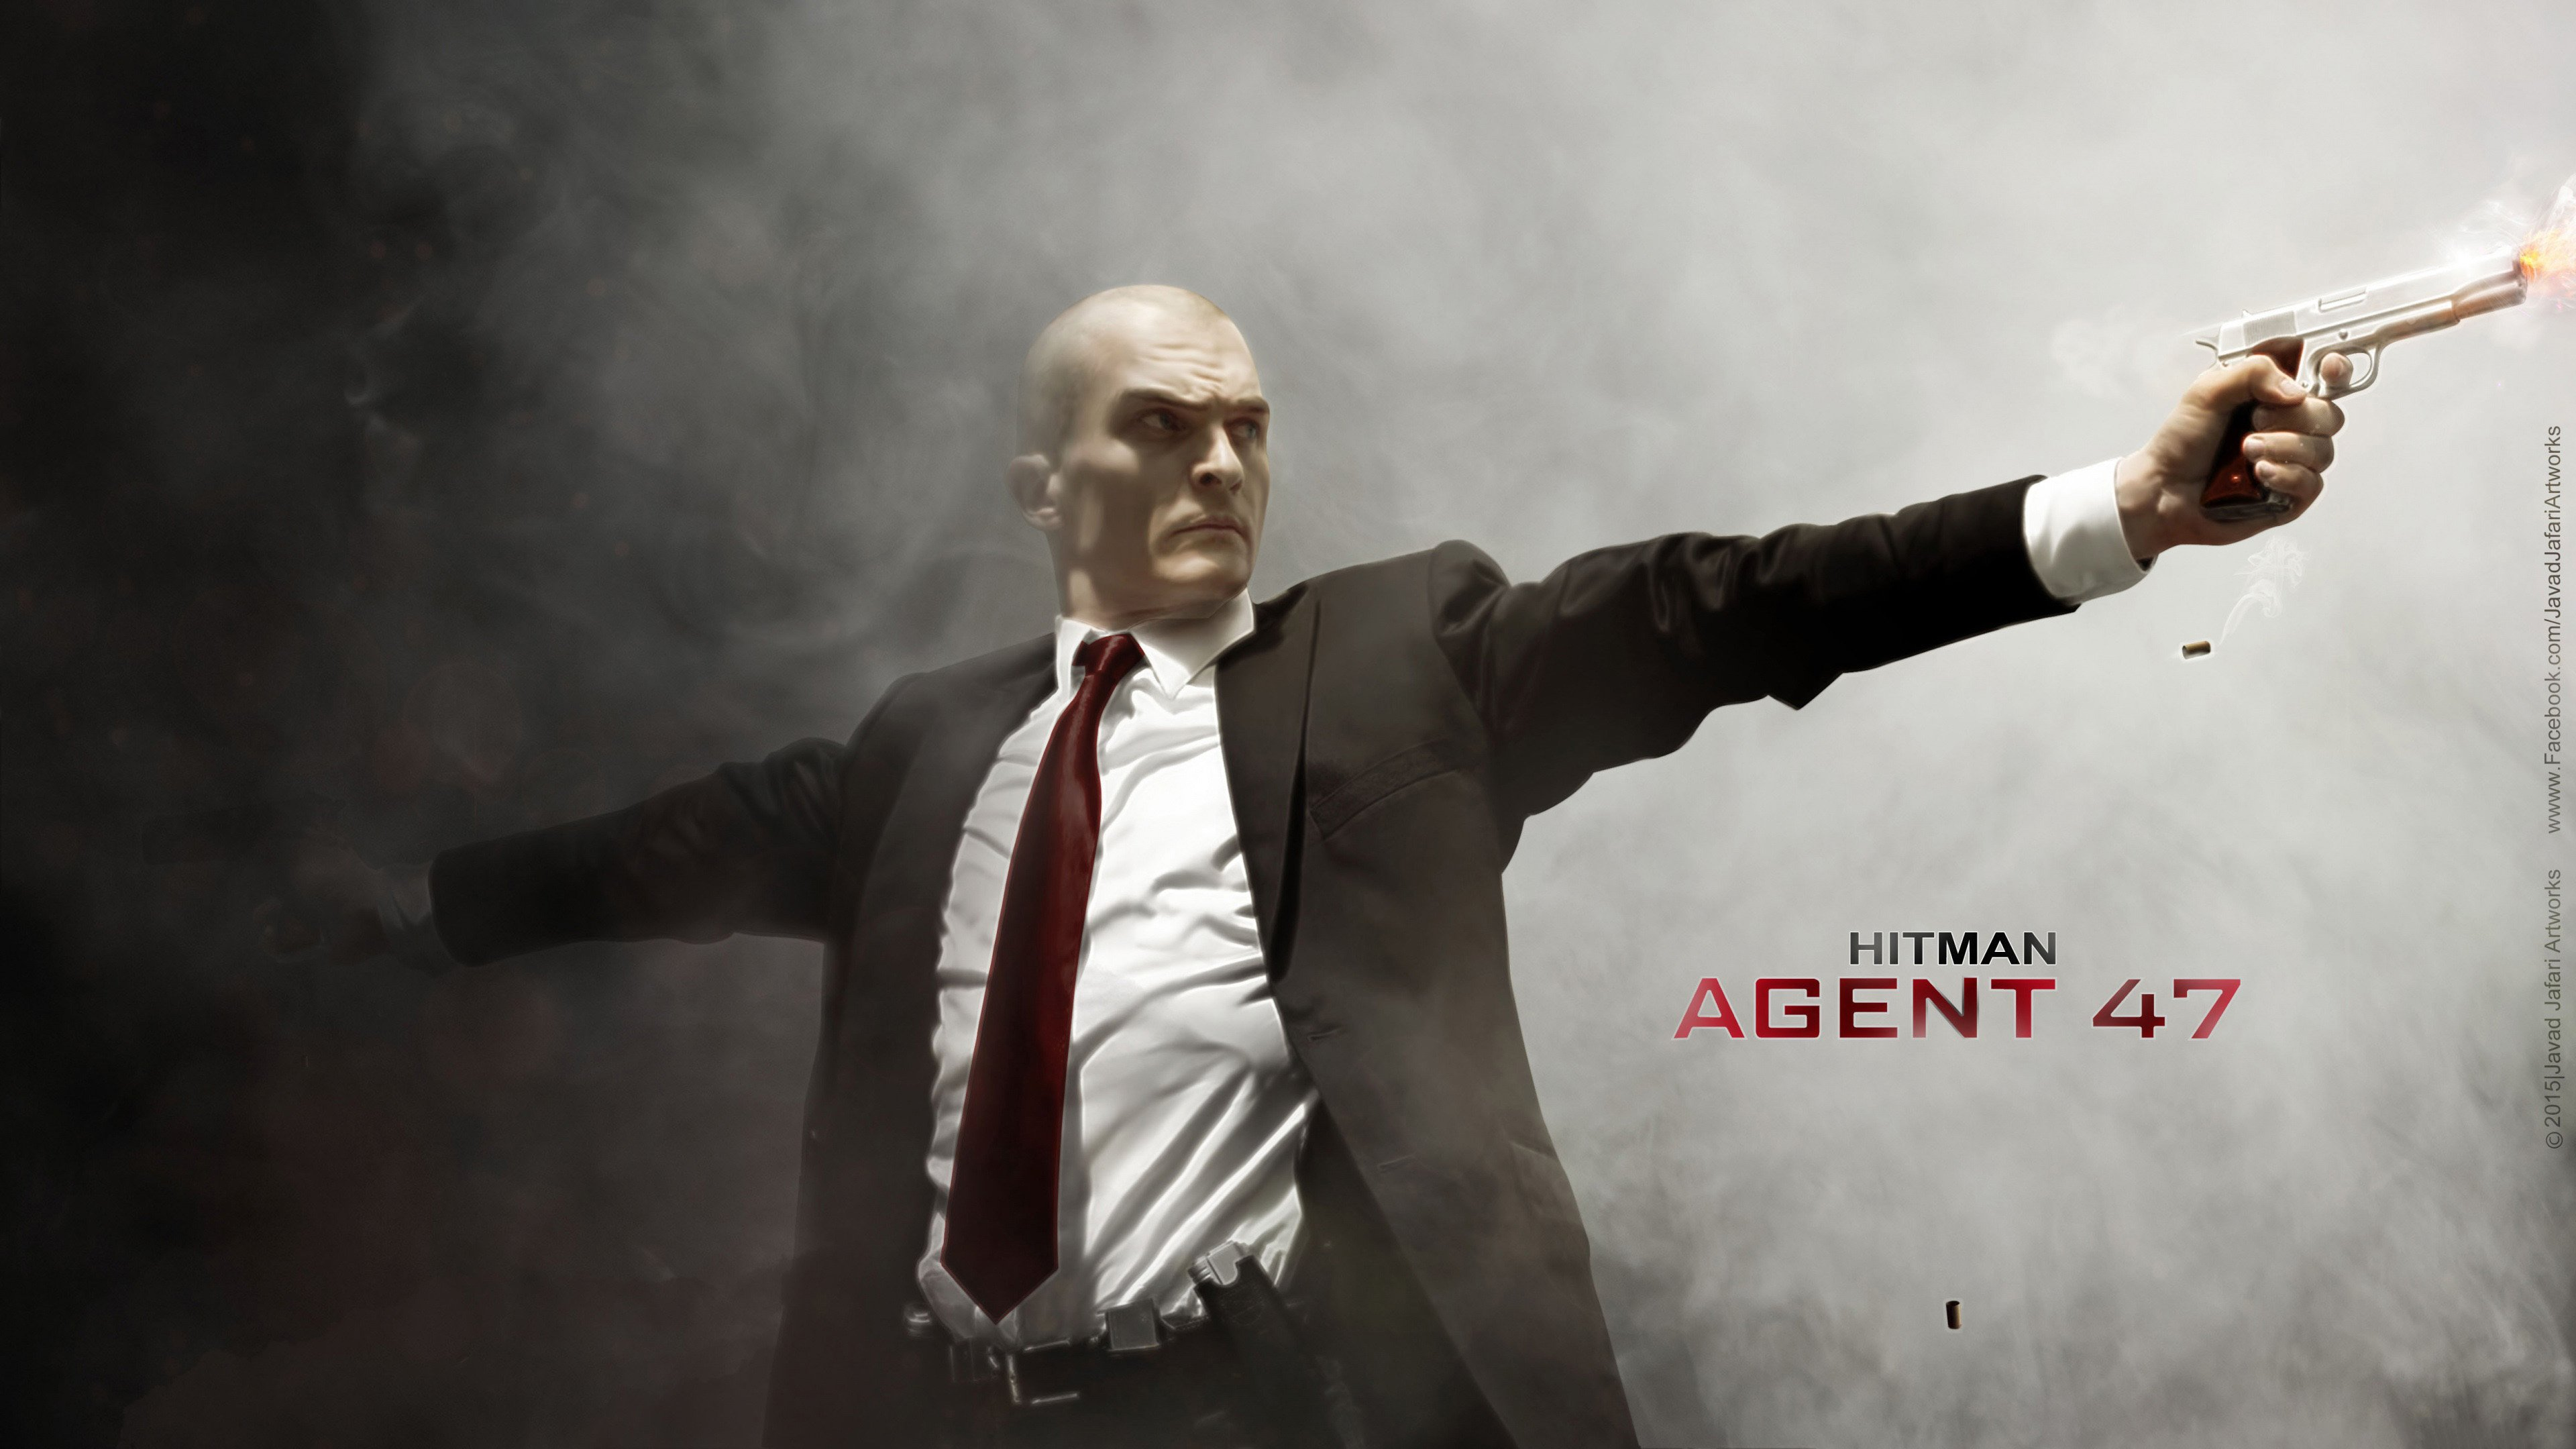 His name is 47 based on the highly successful game Hitman Agent 3840x2160